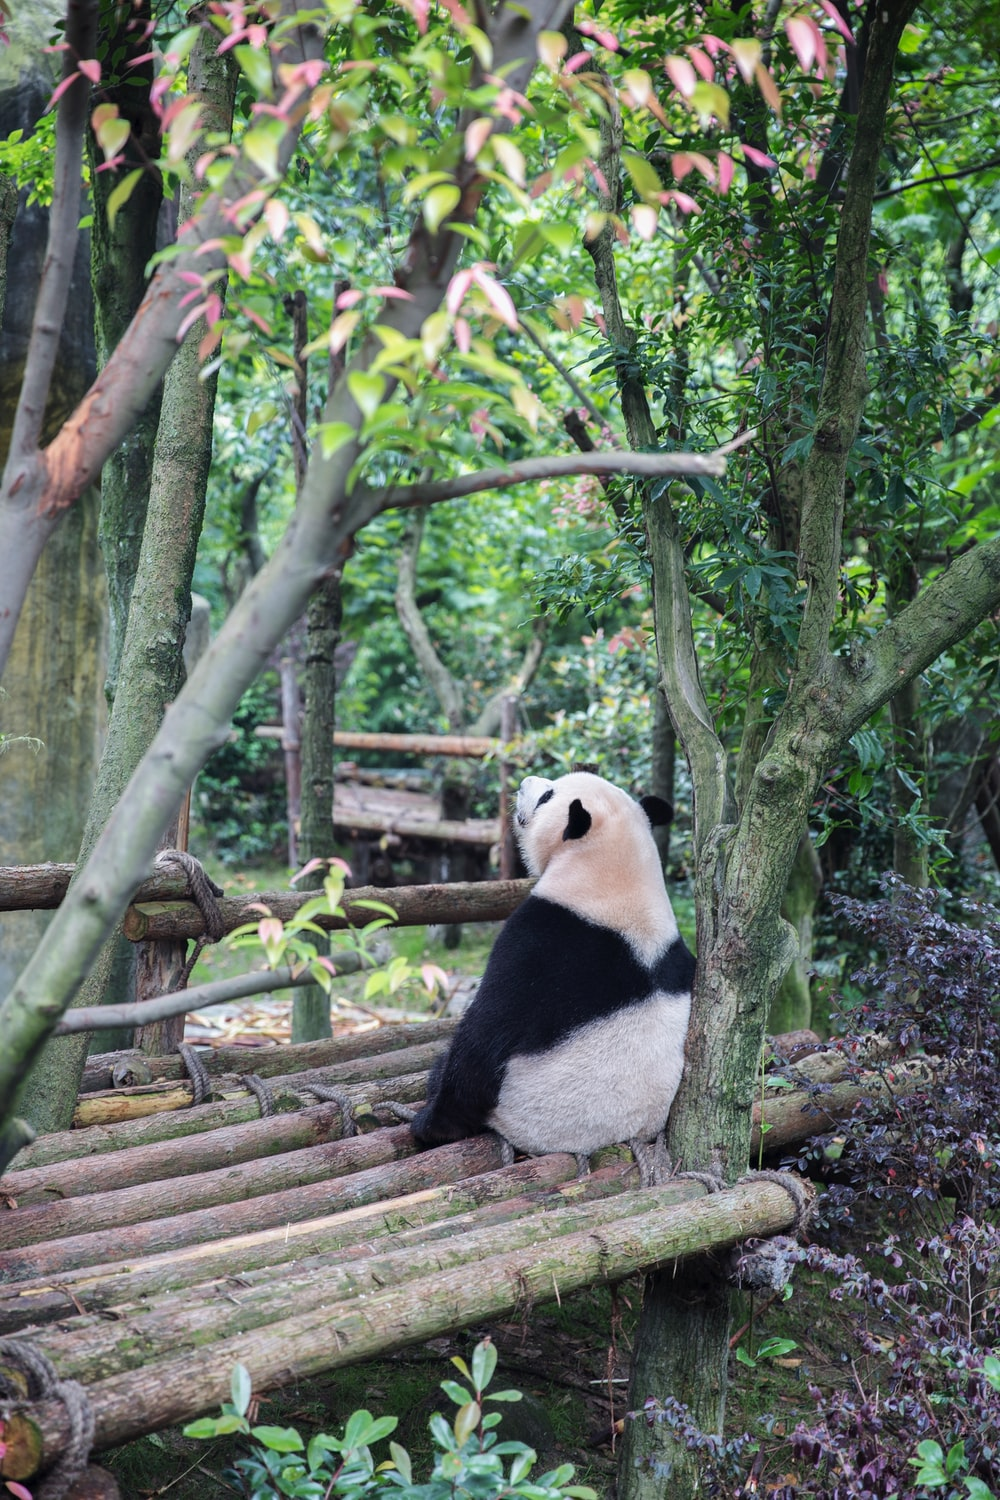 Panda bear sitting on bamboo sticks surrounded with trees